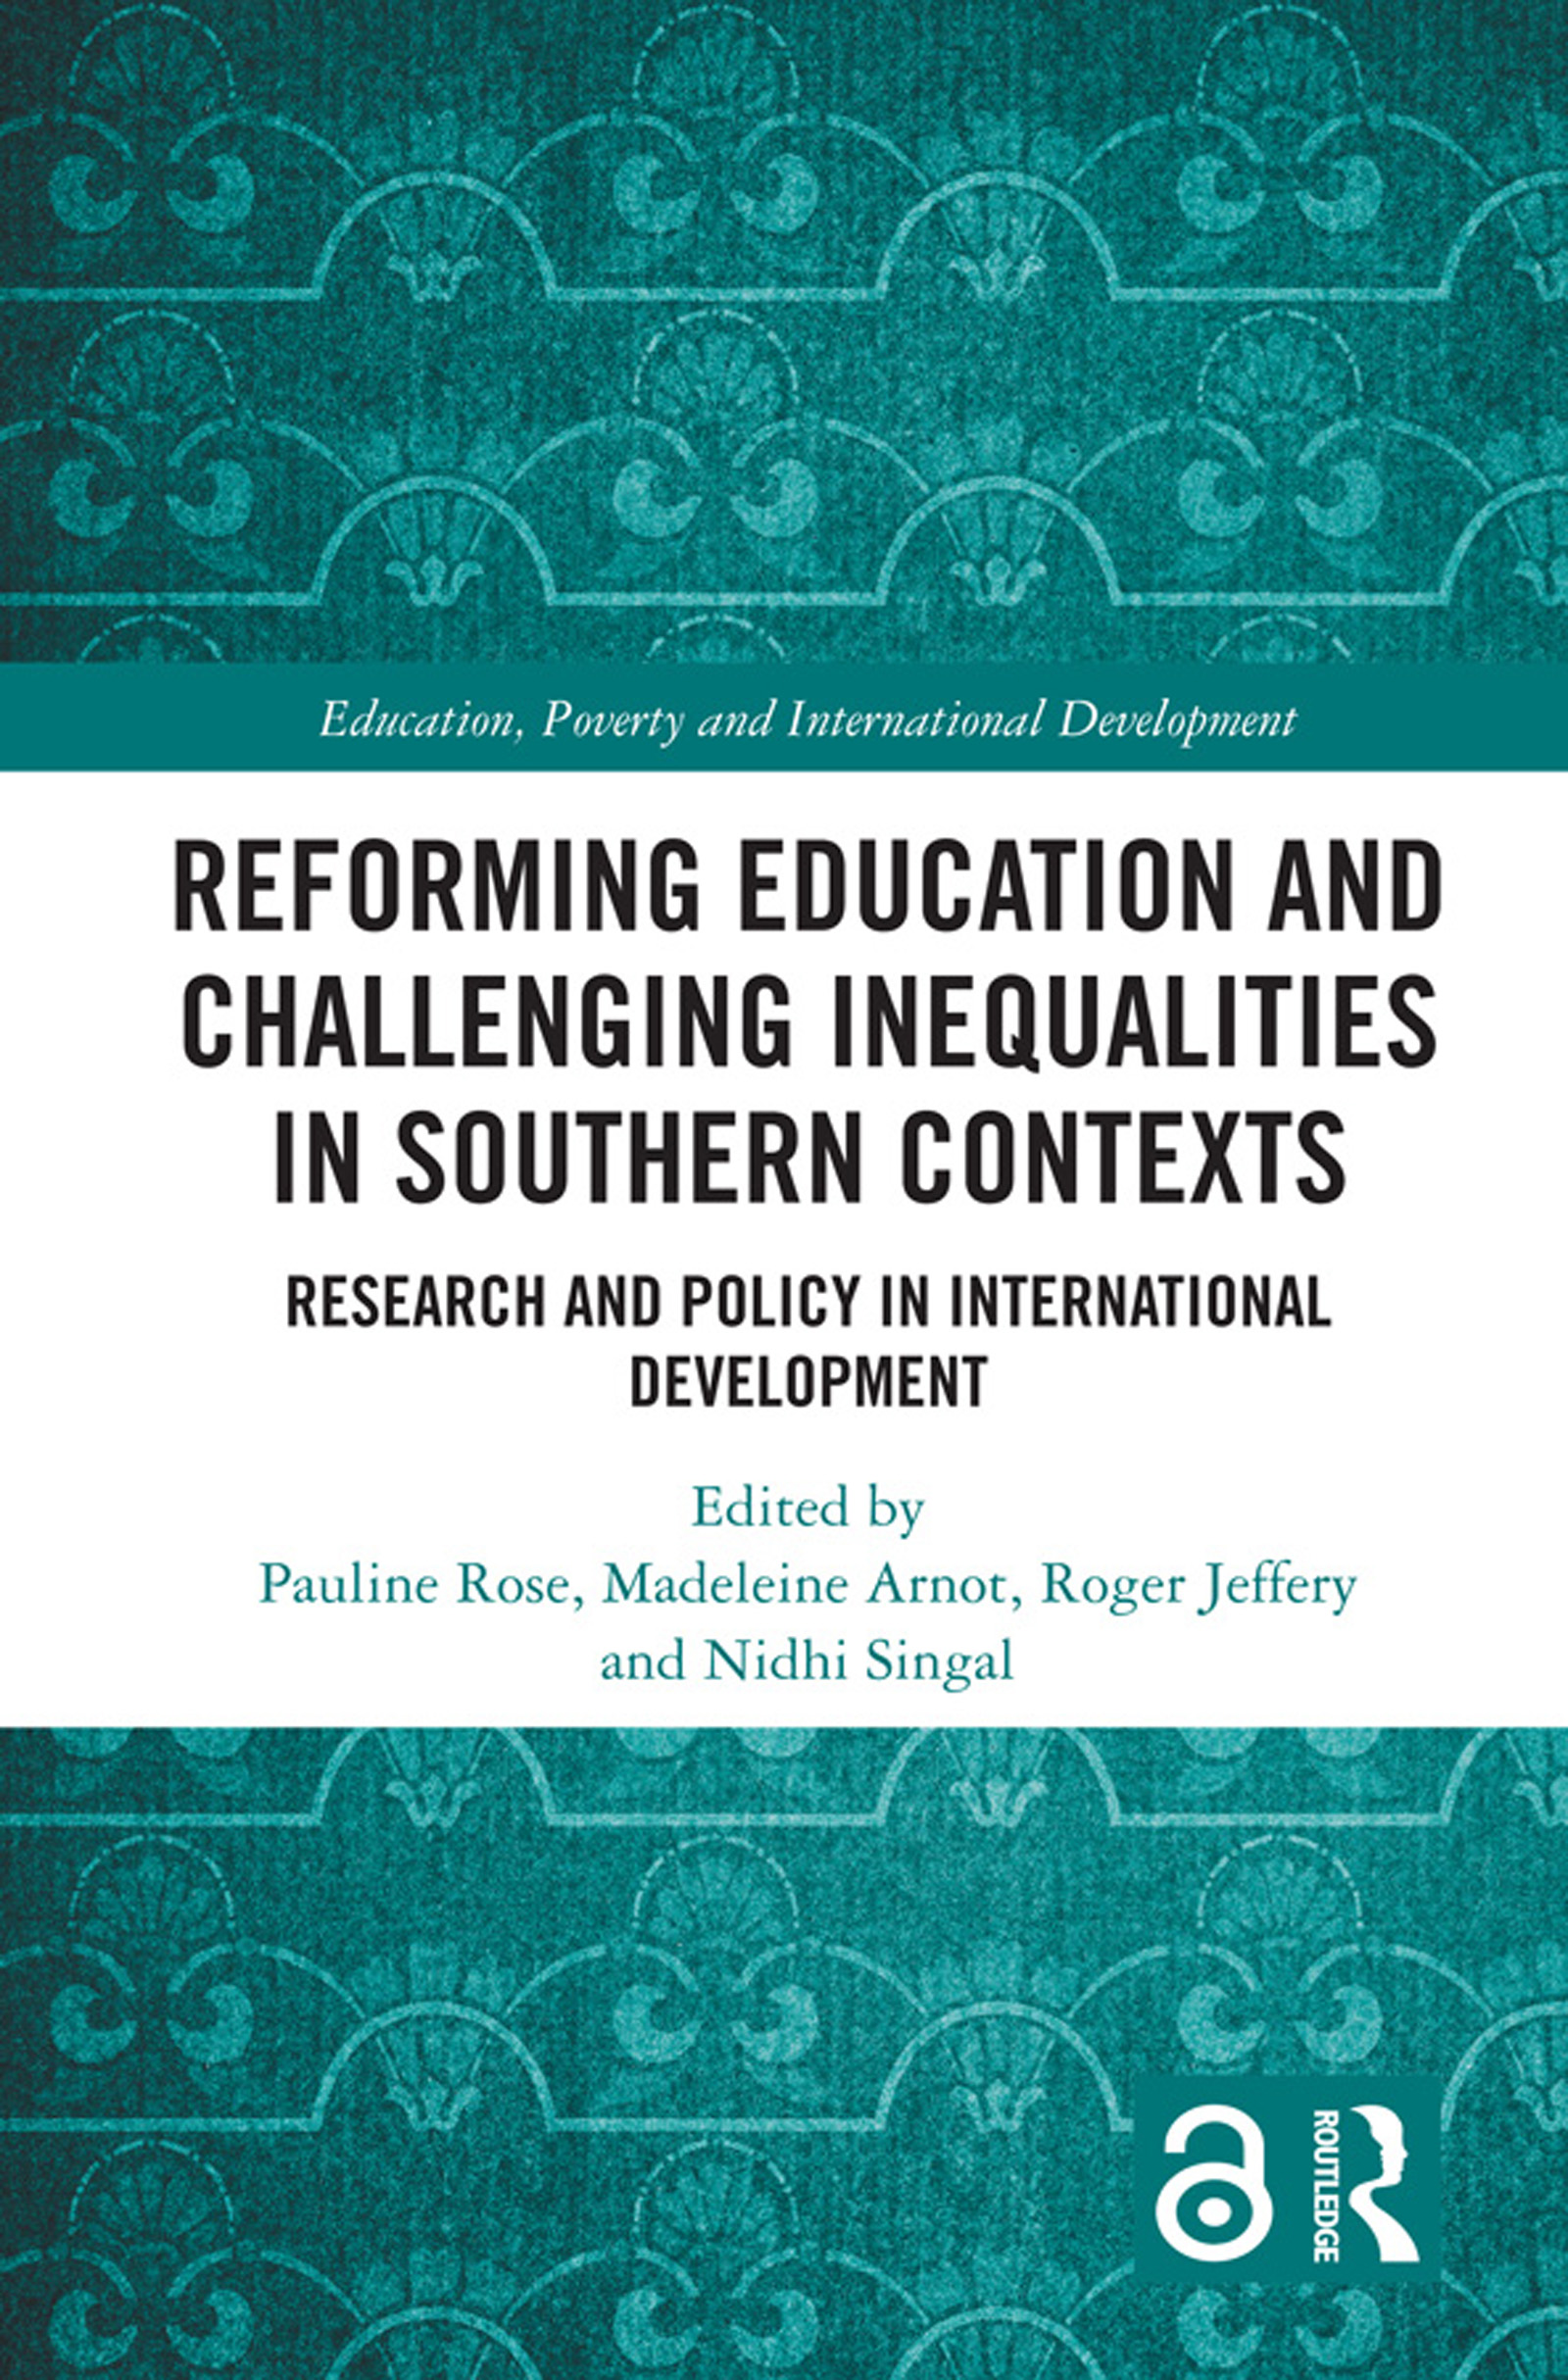 Reforming Education and Challenging Inequalities in Southern Contexts